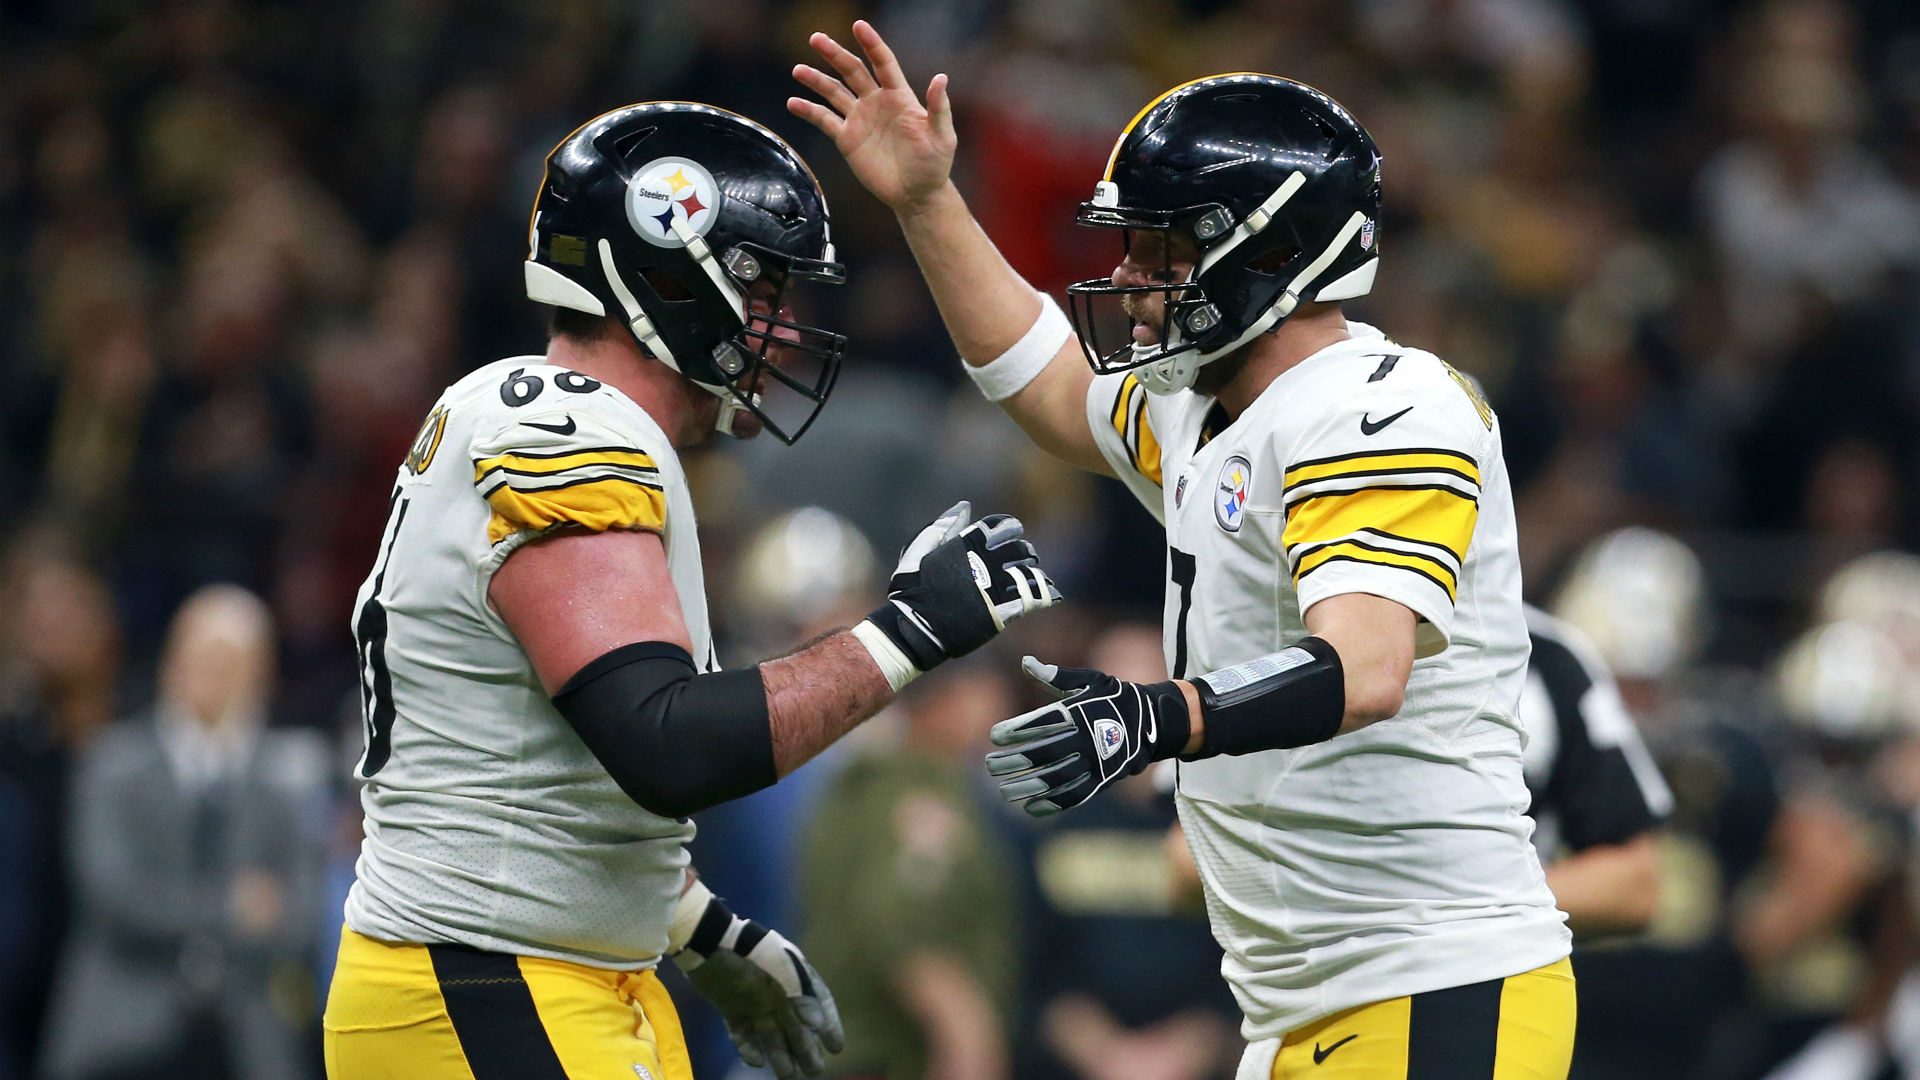 Ben Roethlisberger needs leadership lesson from Steelers before 1920x1080